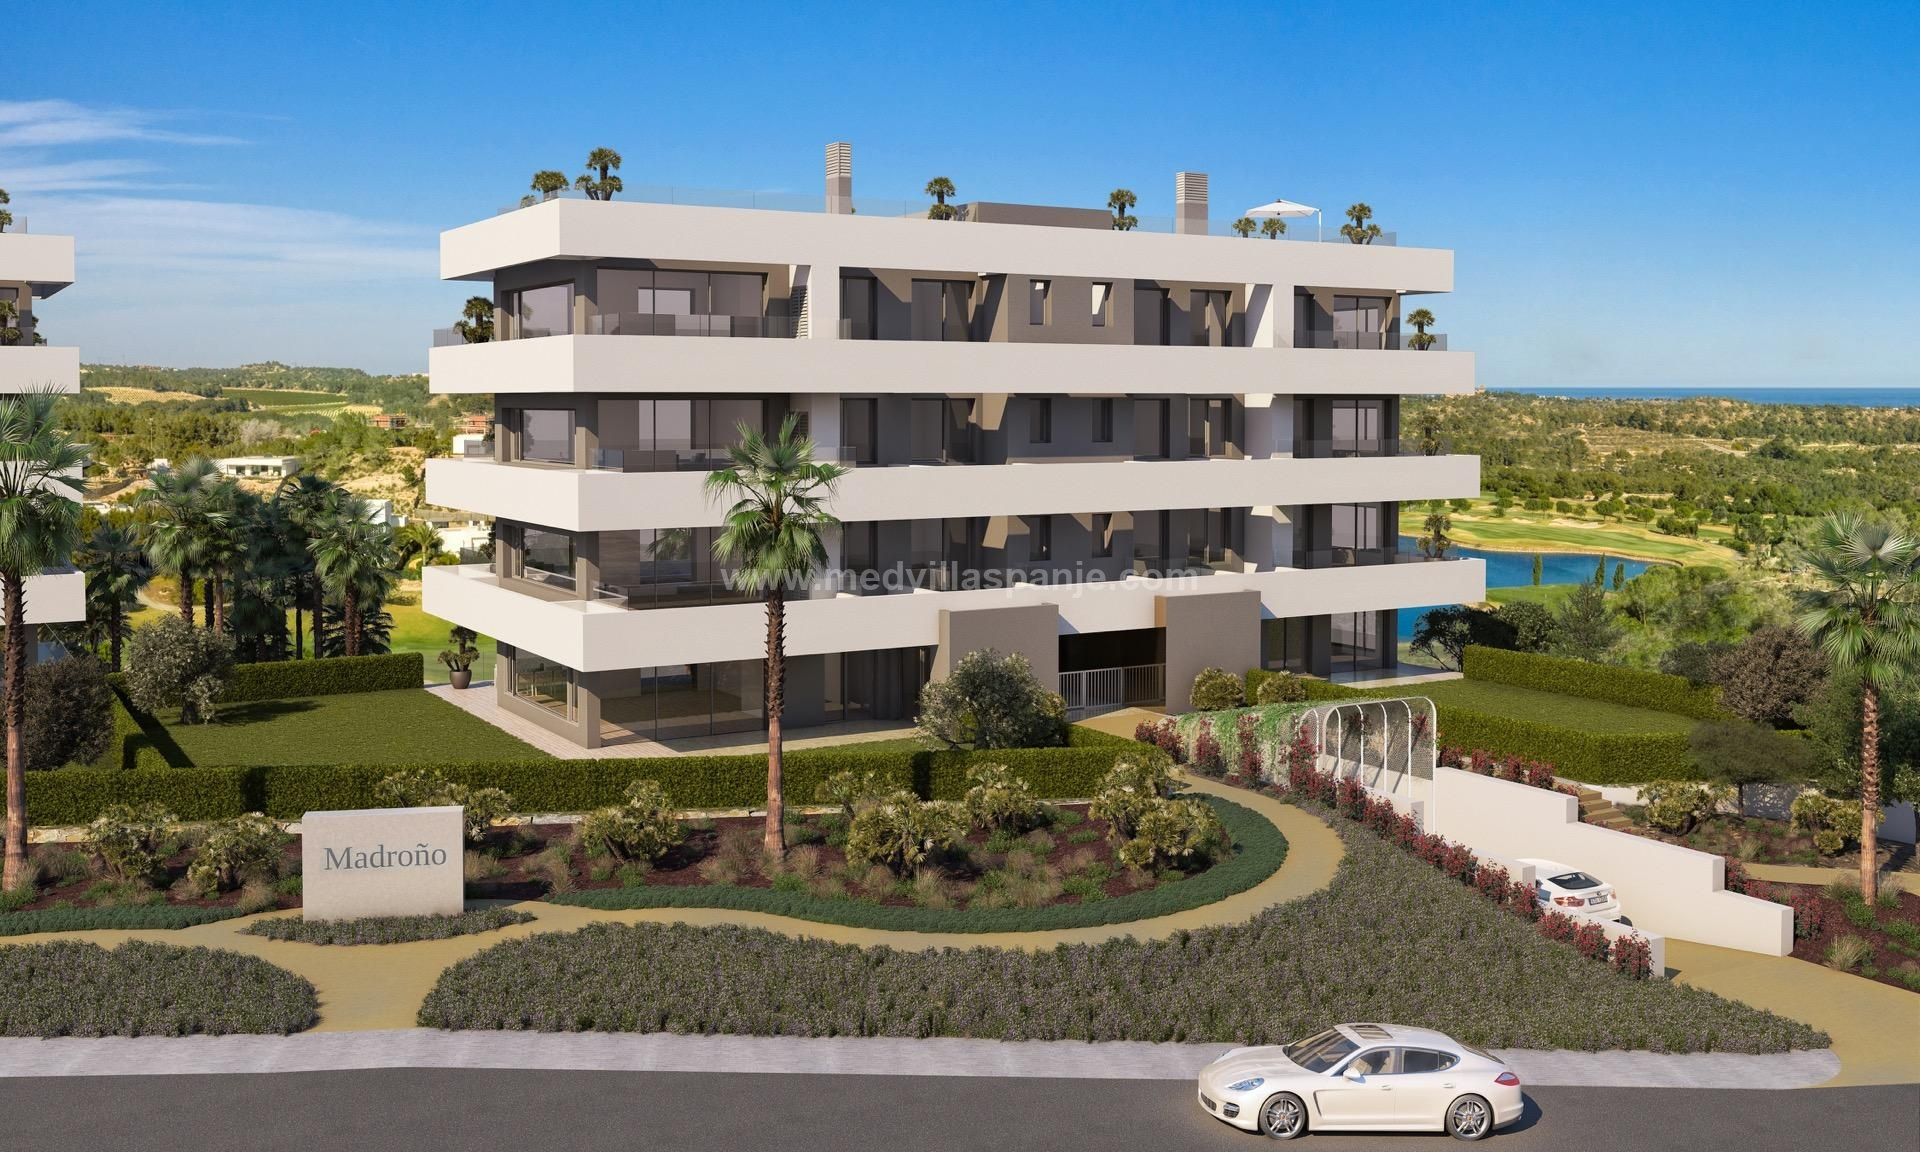 Exclusive design apartments, Costa Blanca in Medvilla Spanje